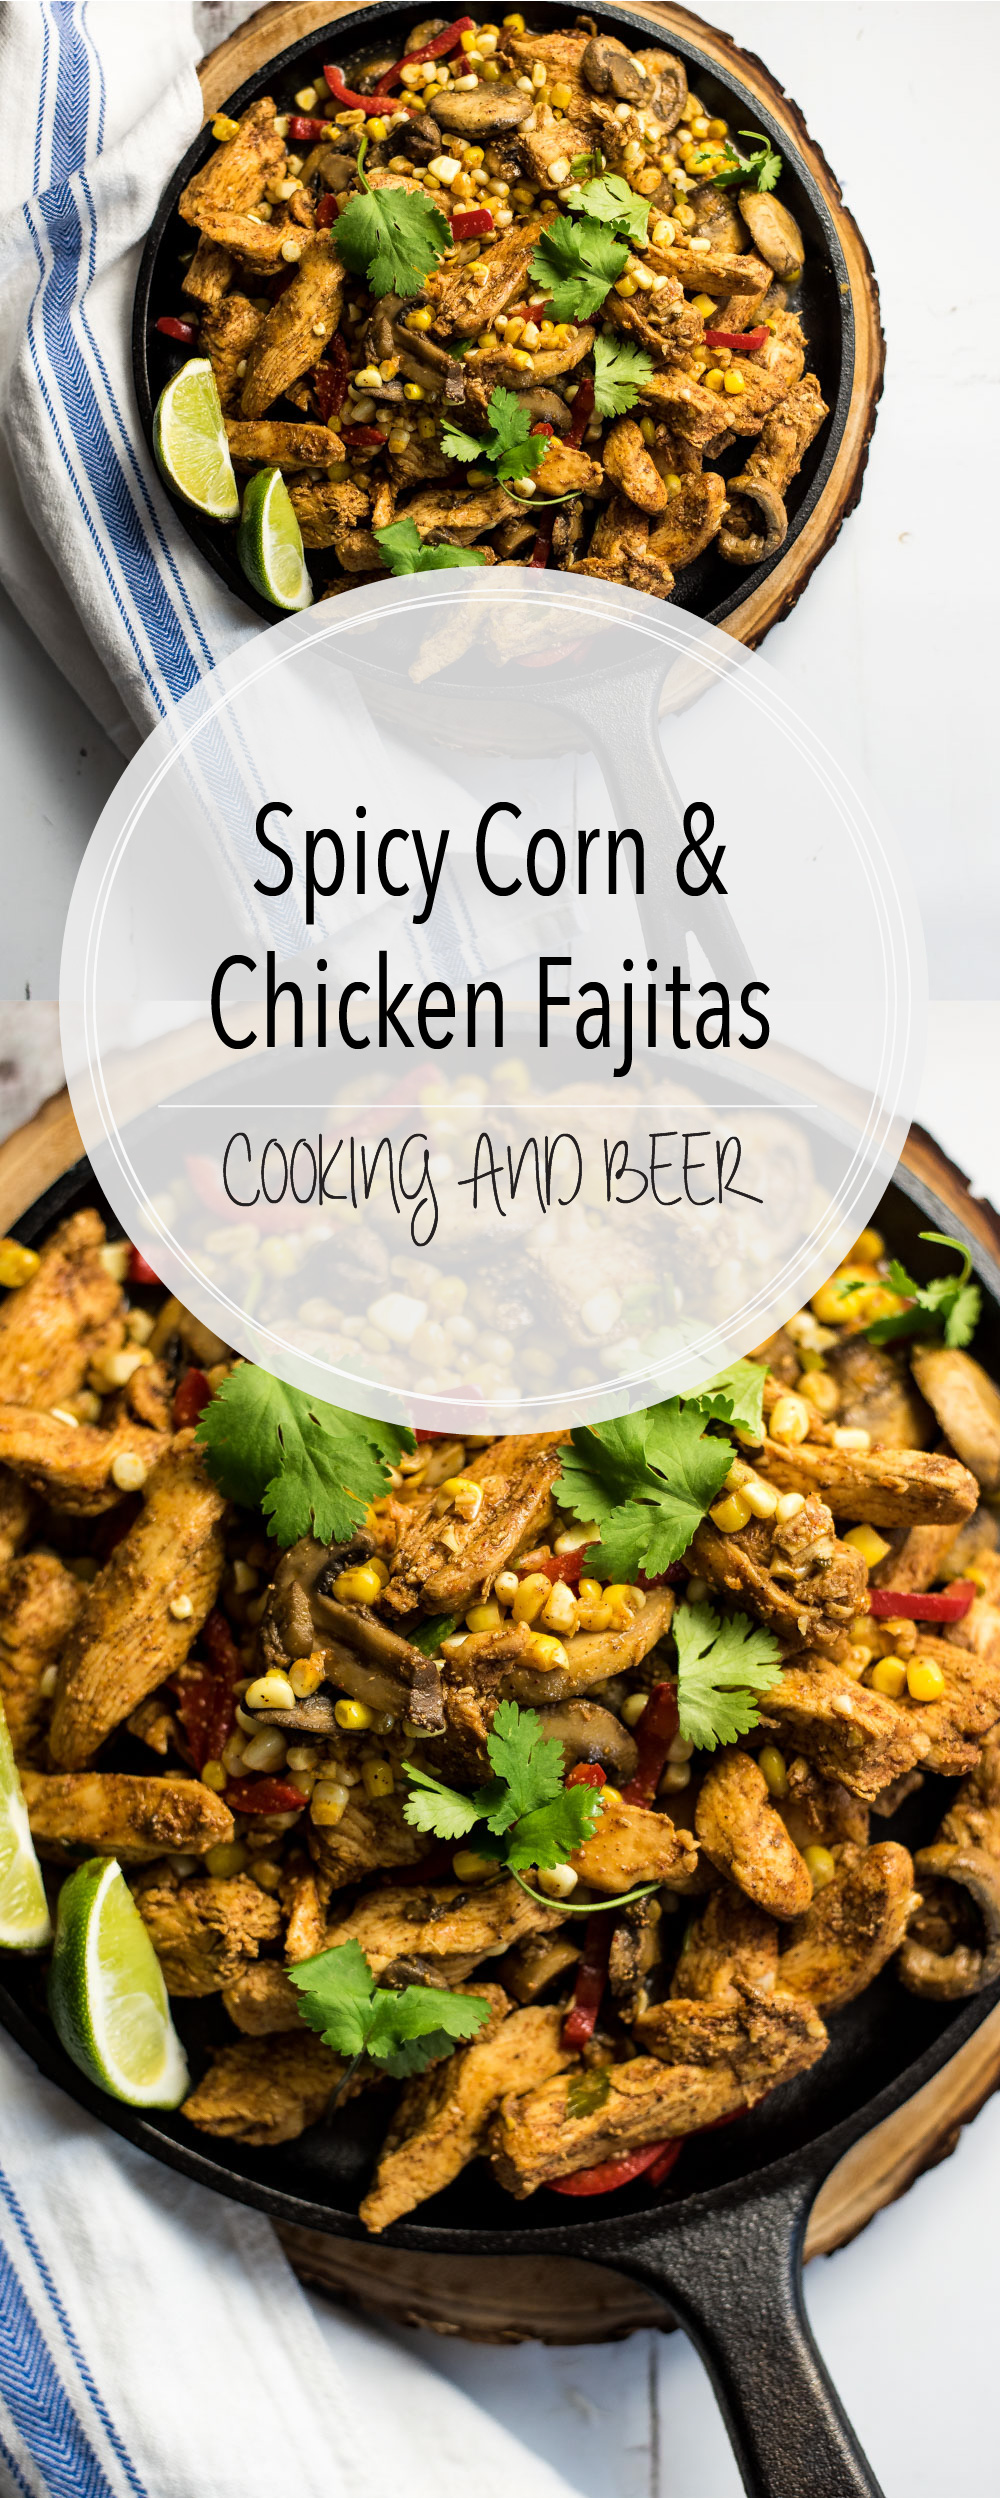 These spicy corn and chicken fajitas are bursting with bold flavors. They are on the table in under an hour and are the perfect weeknight meal!